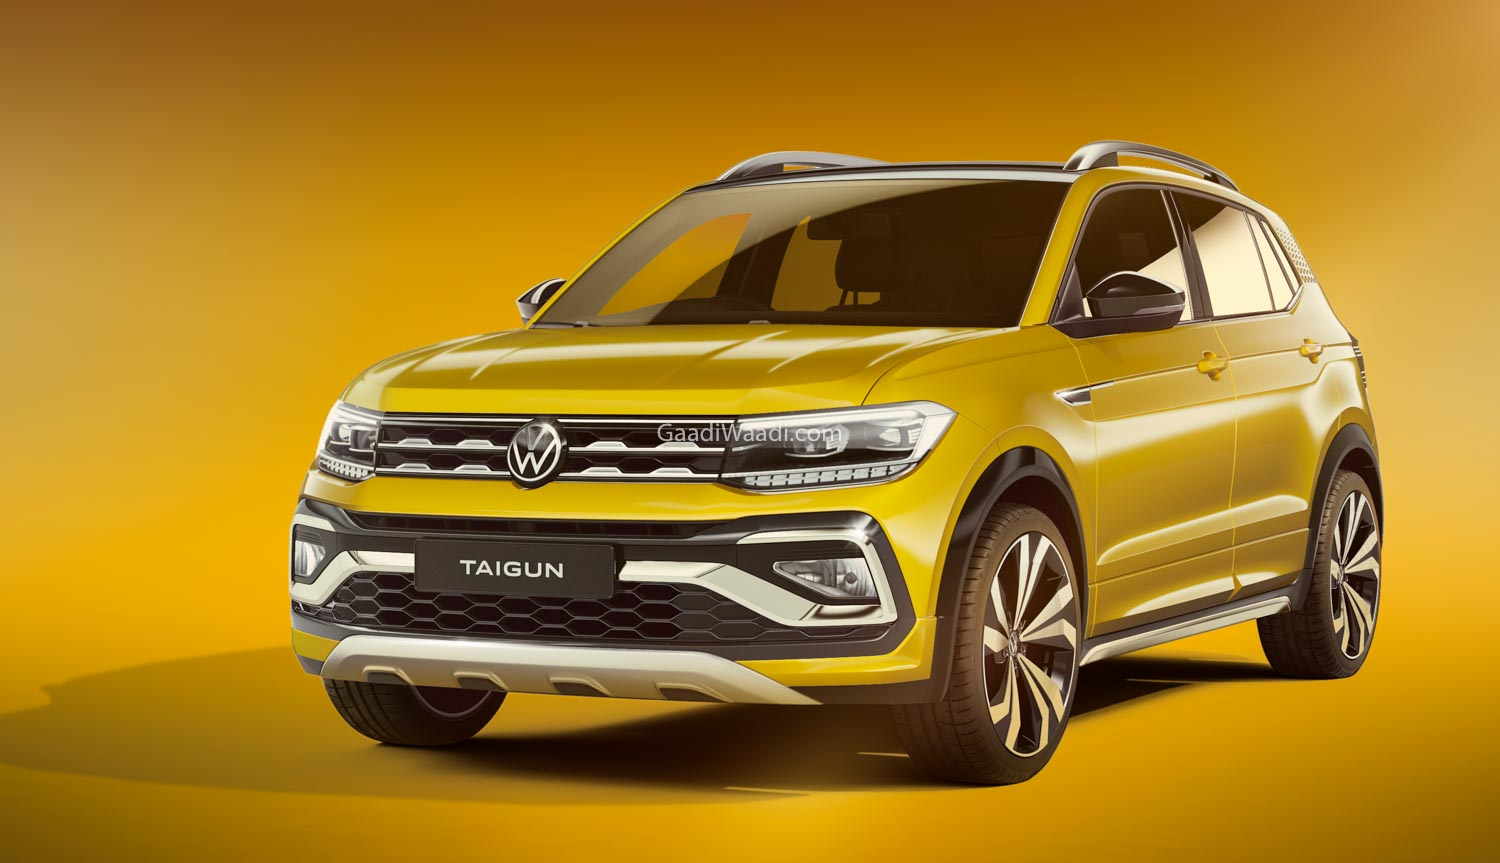 Volkswagen Taigun Compact SUV Explained In Walkaround Video thumbnail